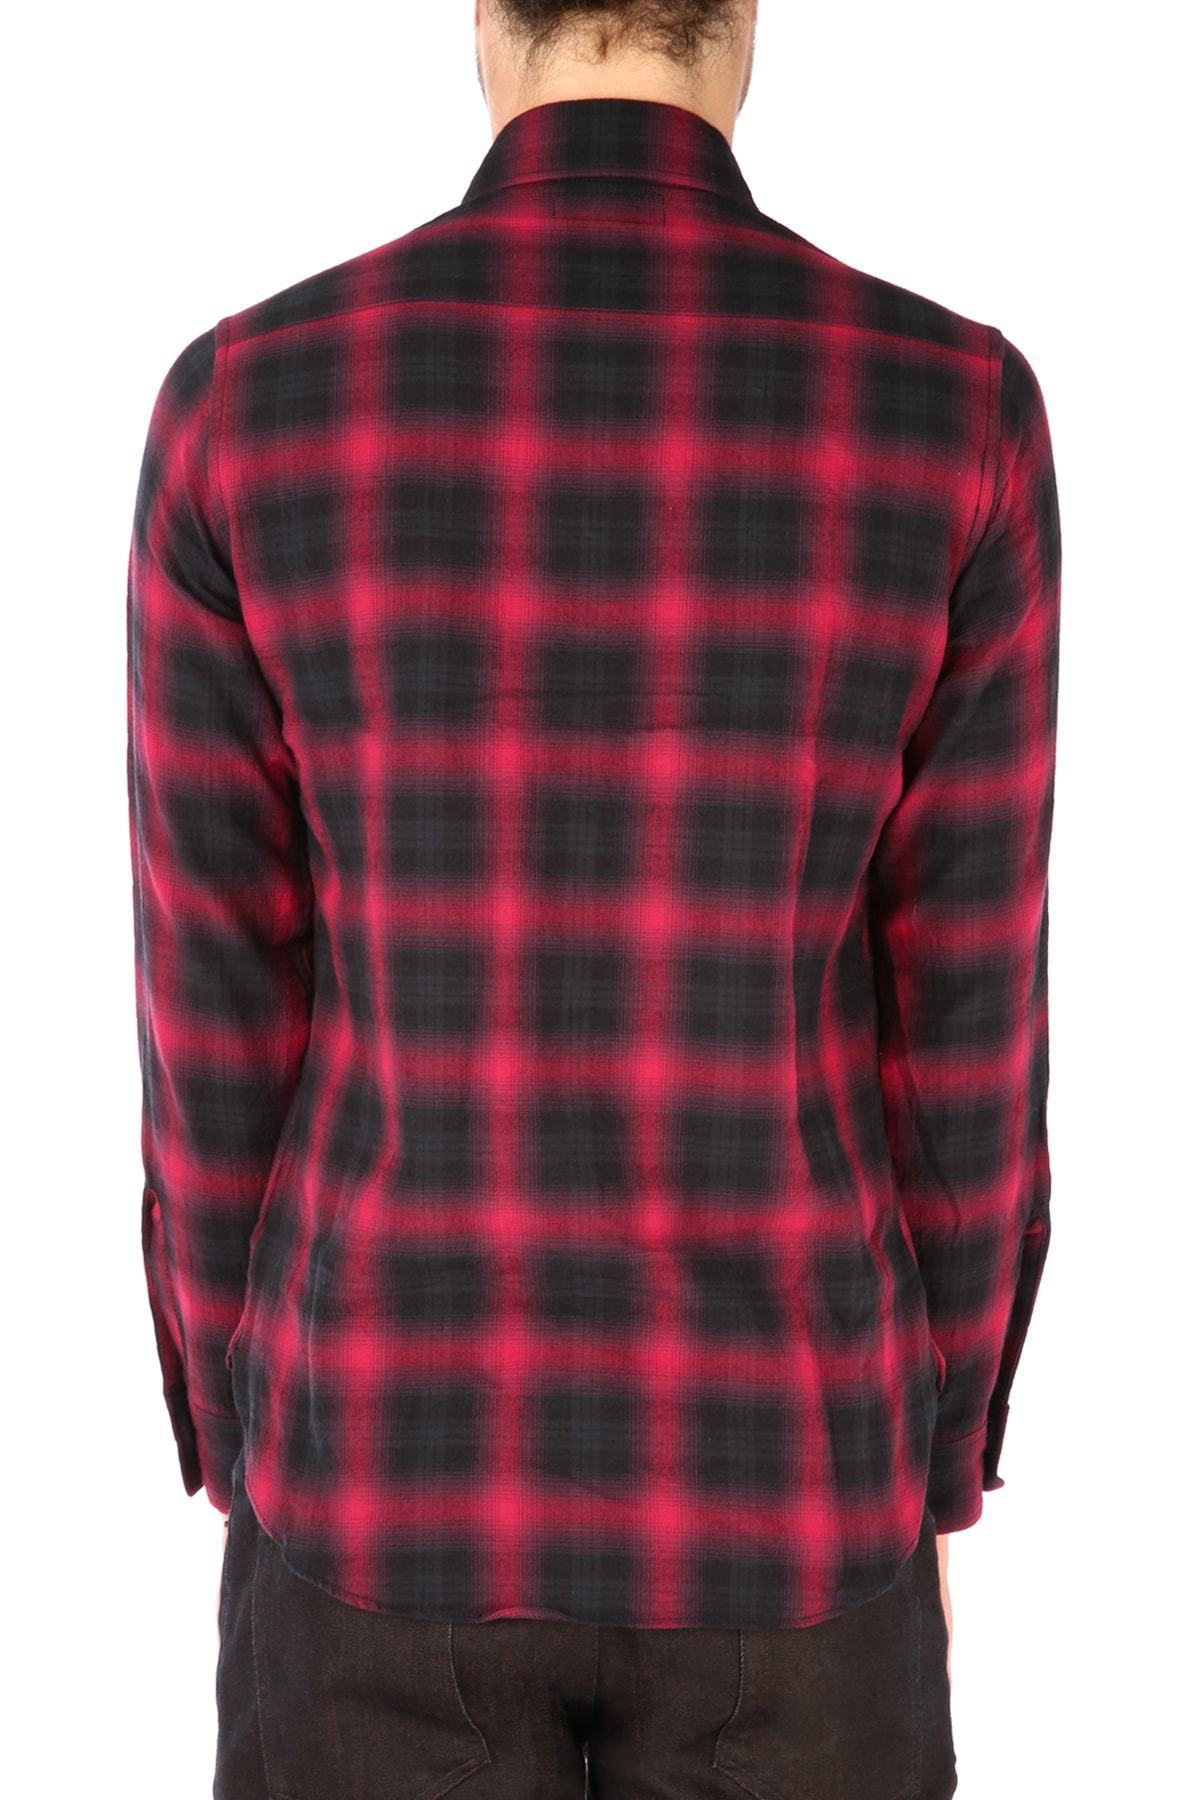 17 aw new saint laurent block check shirt red s buyma for Saint laurent check shirt